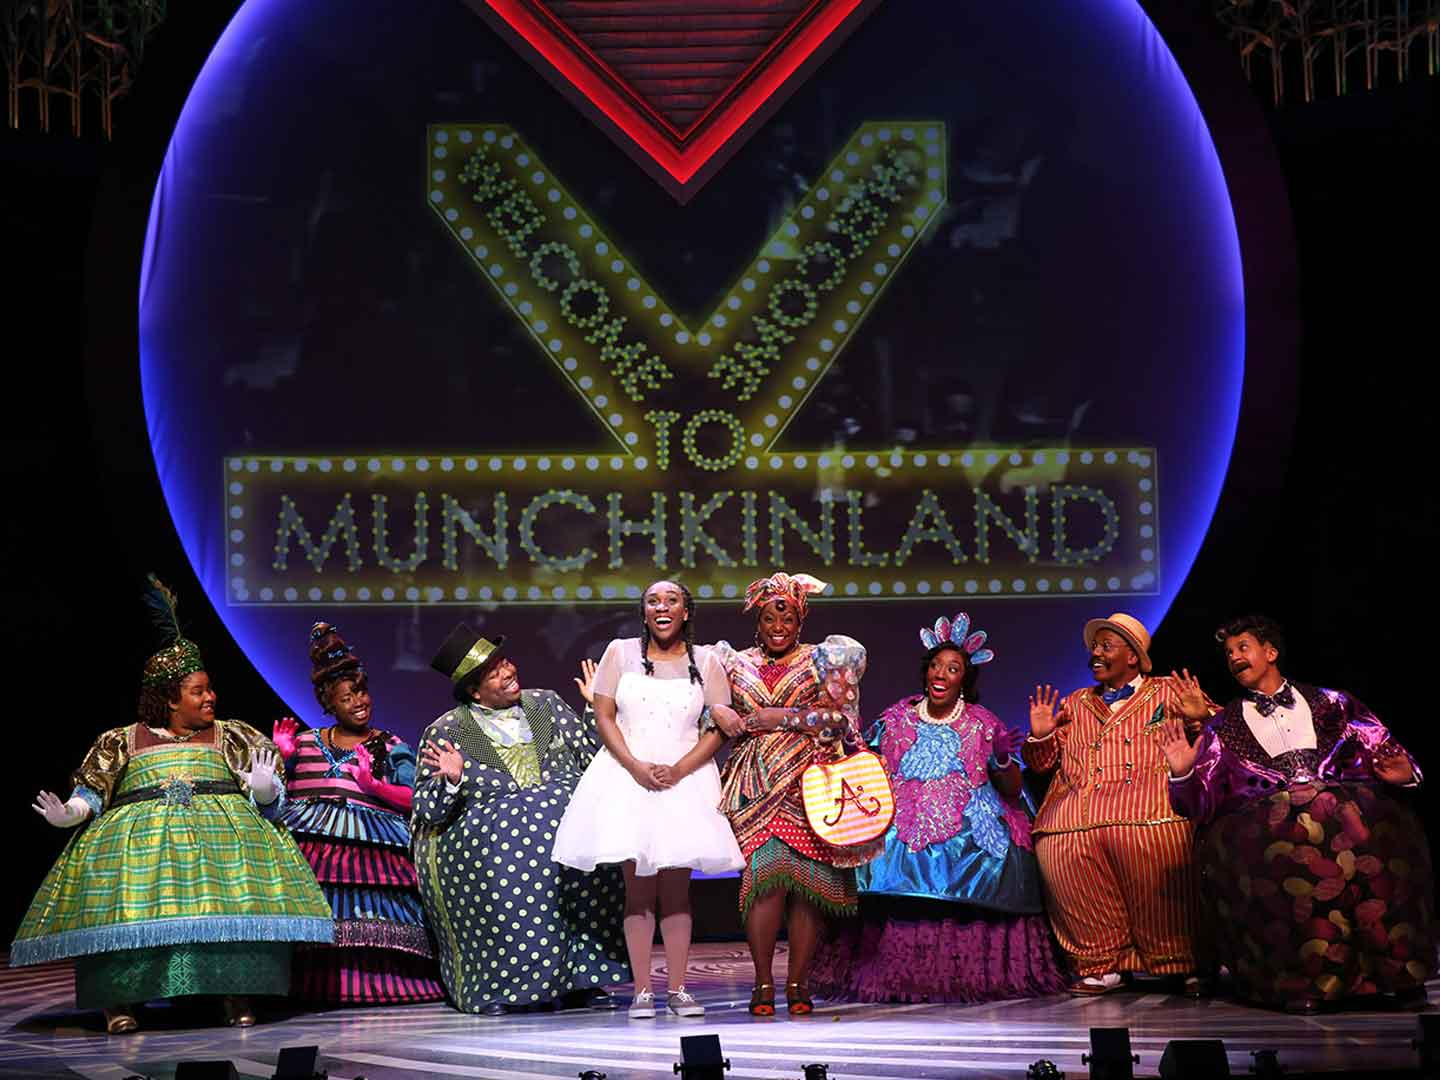 Review: 'The Wiz' Revival Punctuates Possibilities, Power of